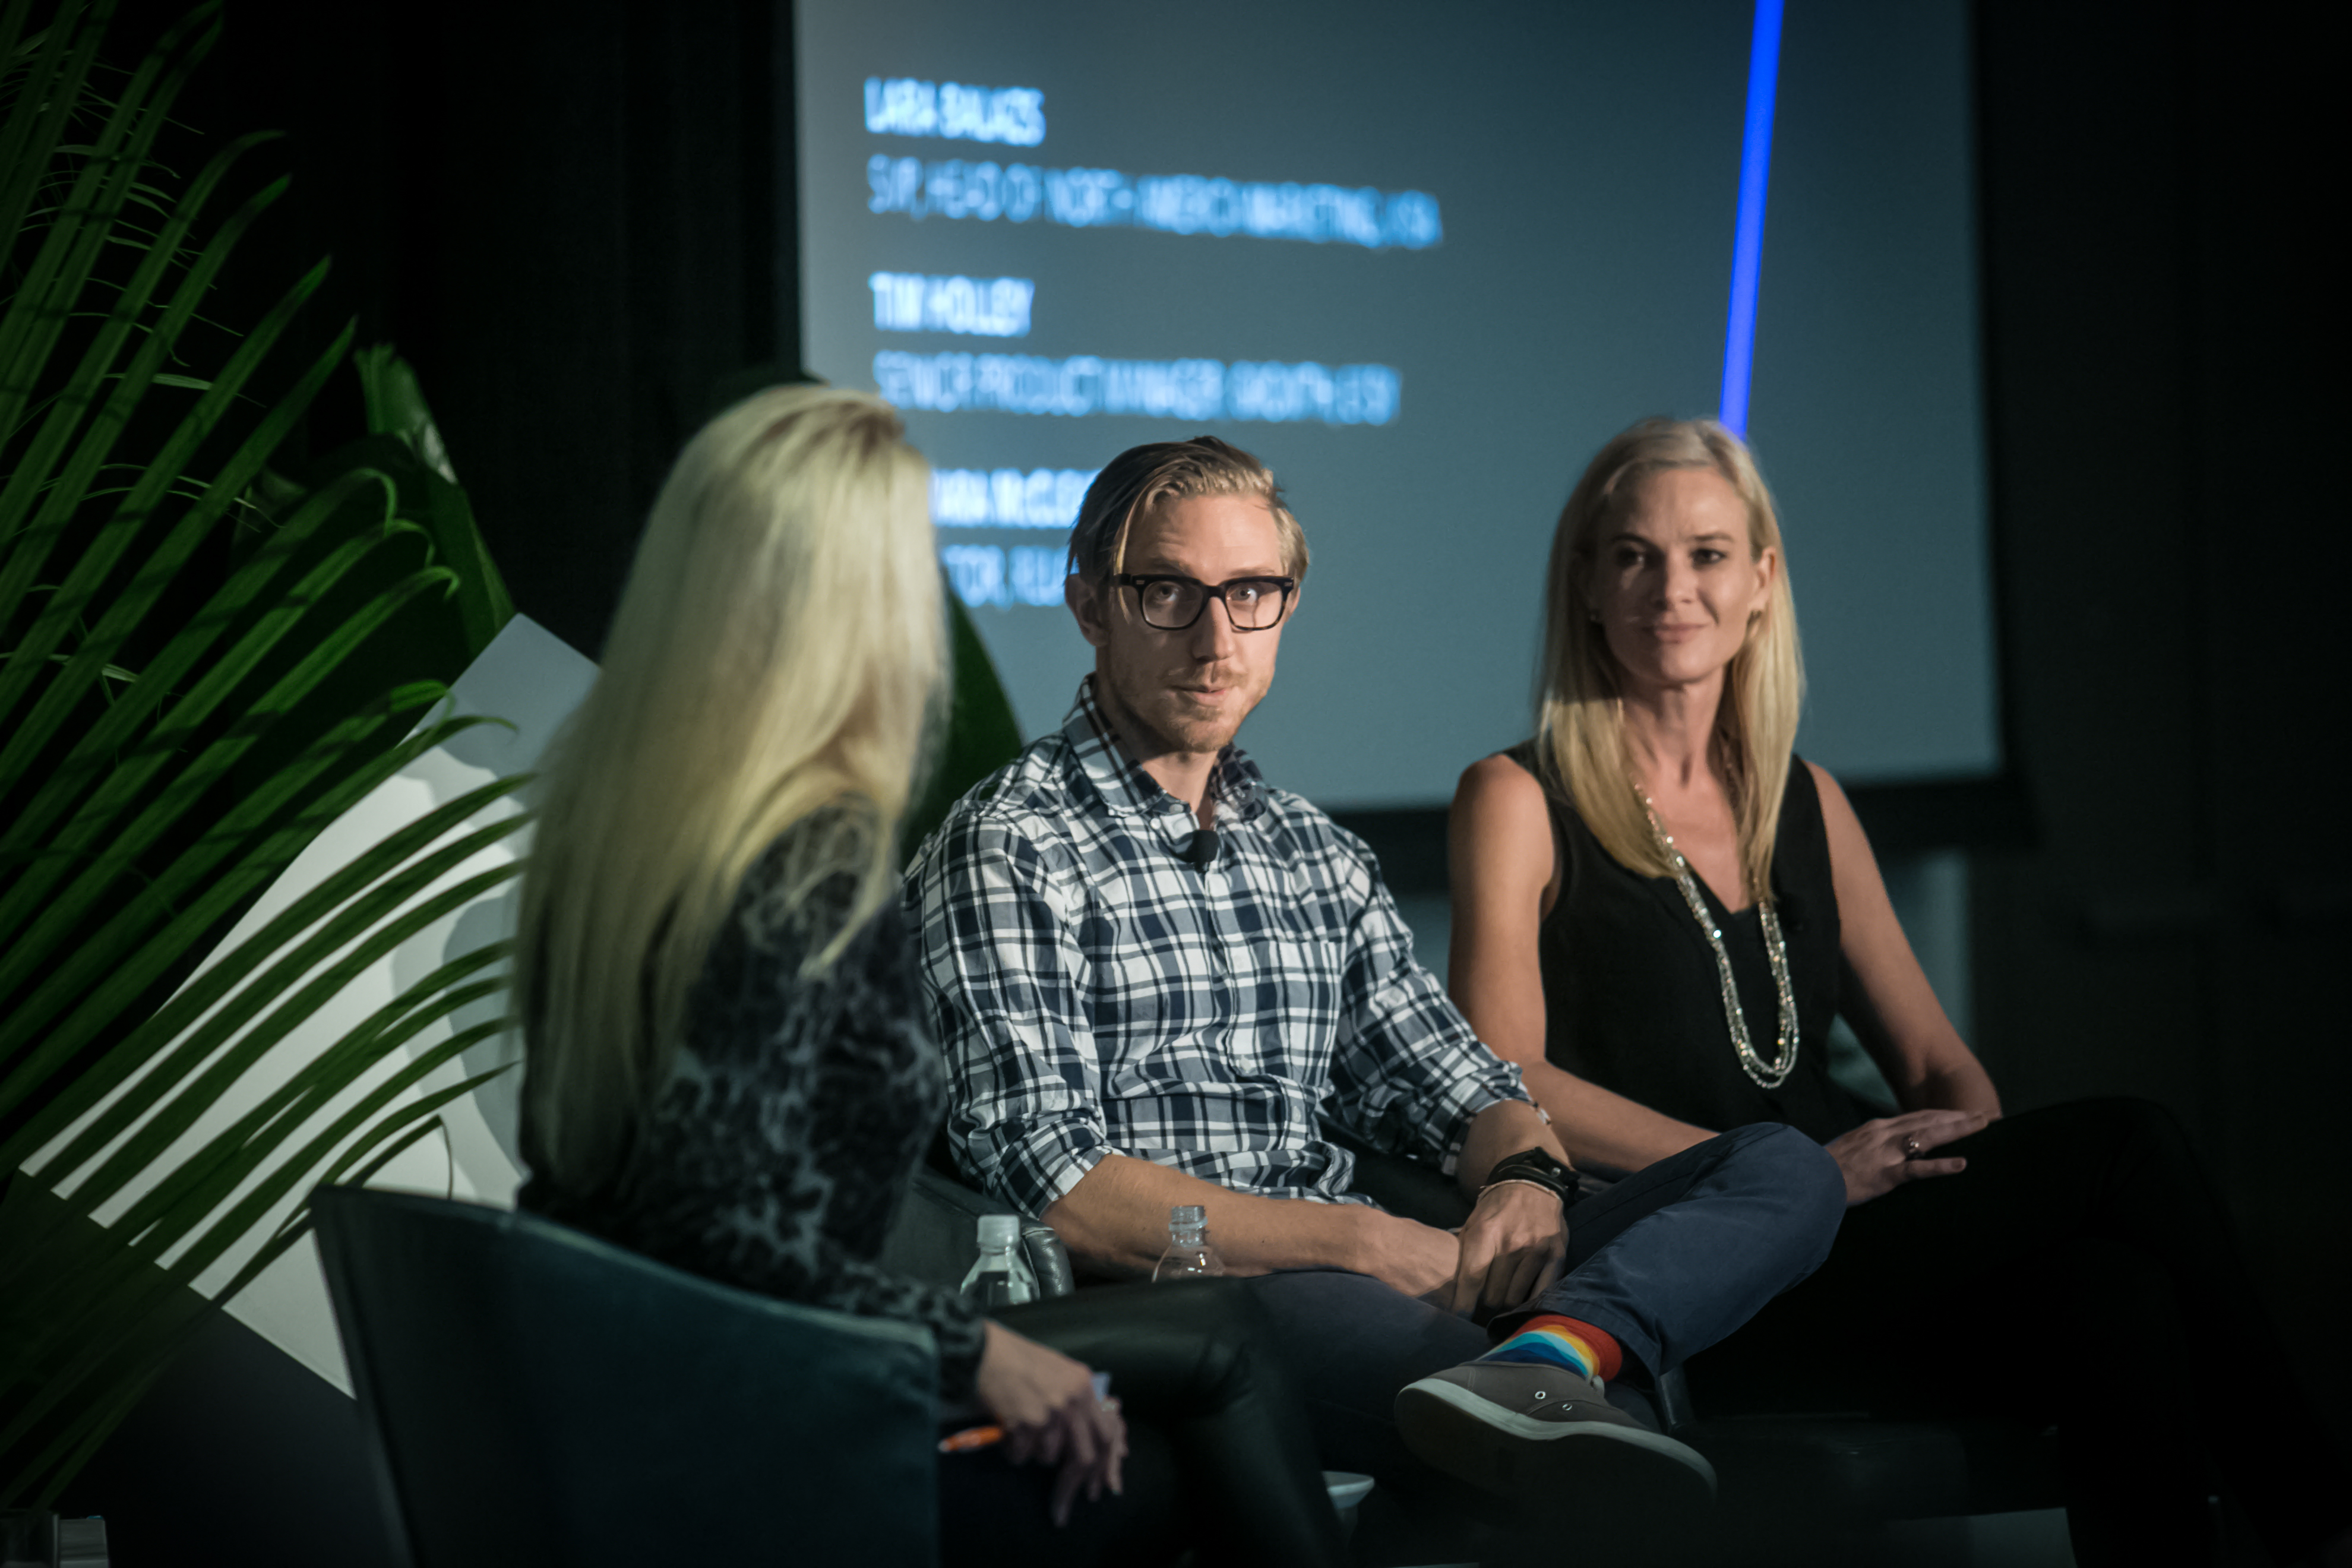 Tamara McCleary leads a panel discussion with Lara Hood Balazs of Visa and Tim Holley of Etsy at Appboy's LTR Conference